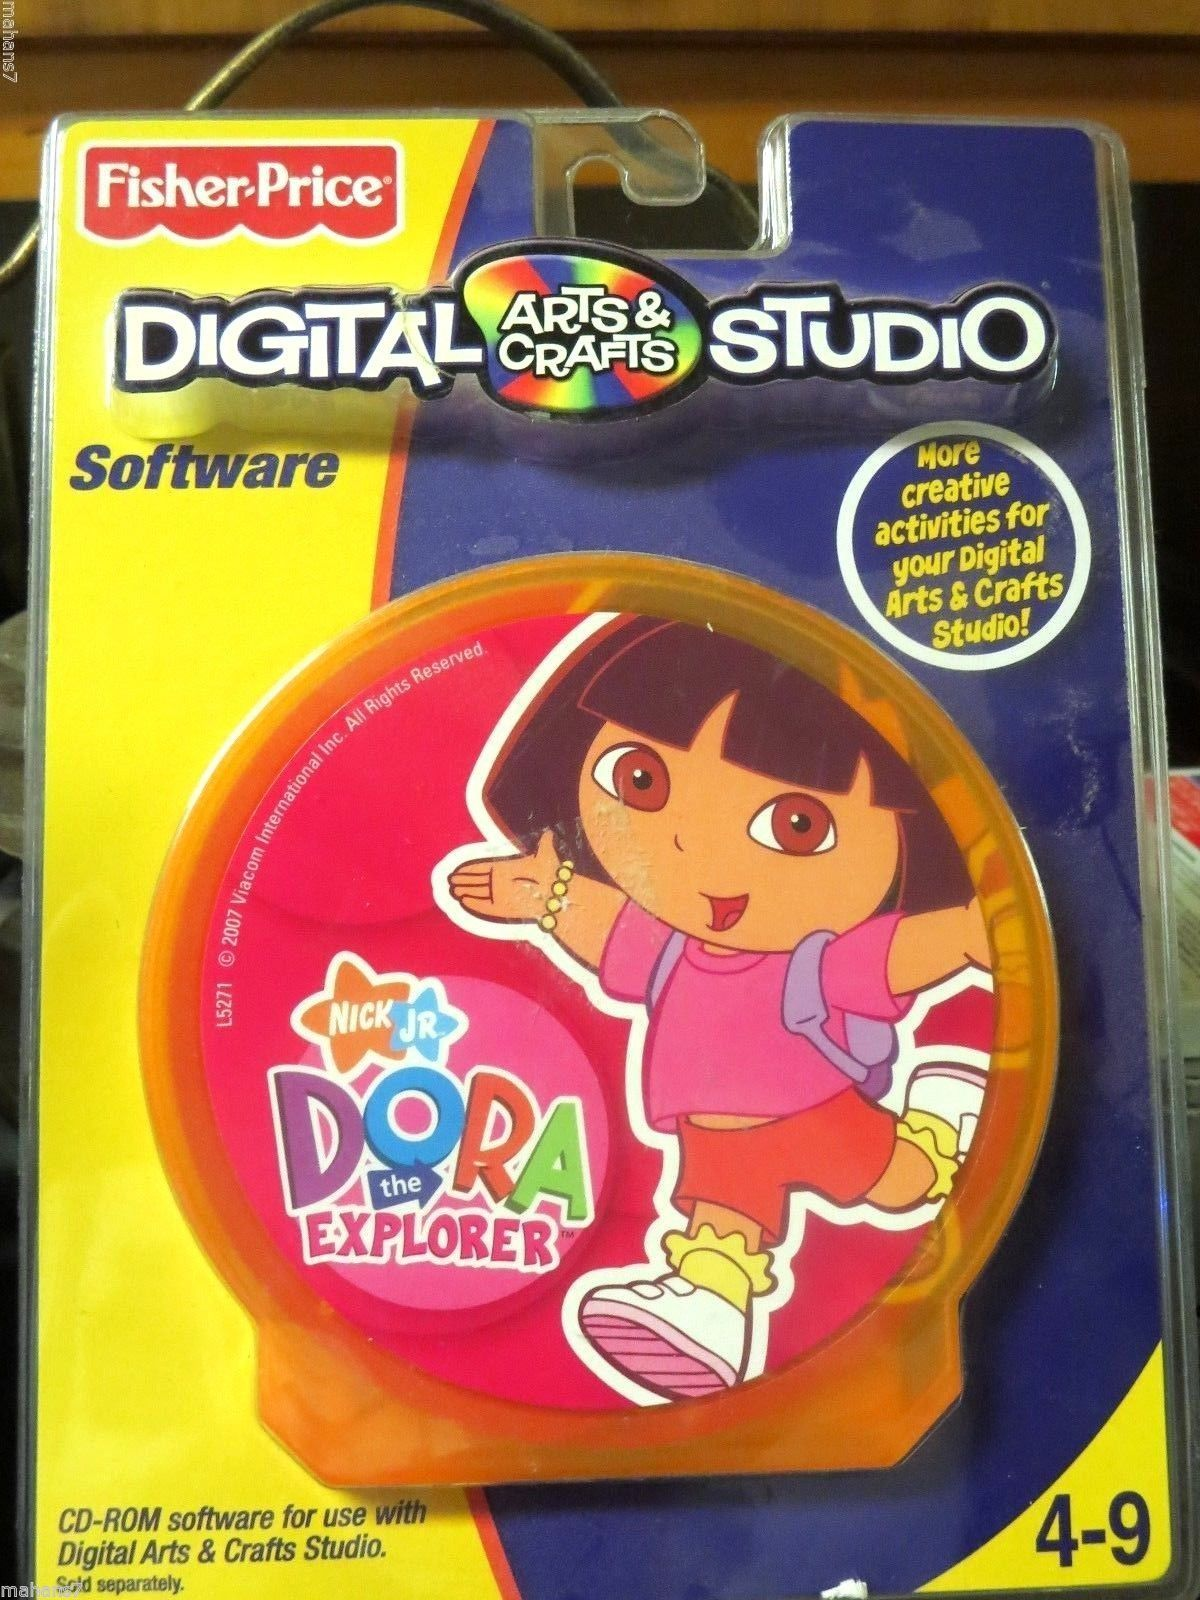 fisher price digital arts and crafts studio software nick